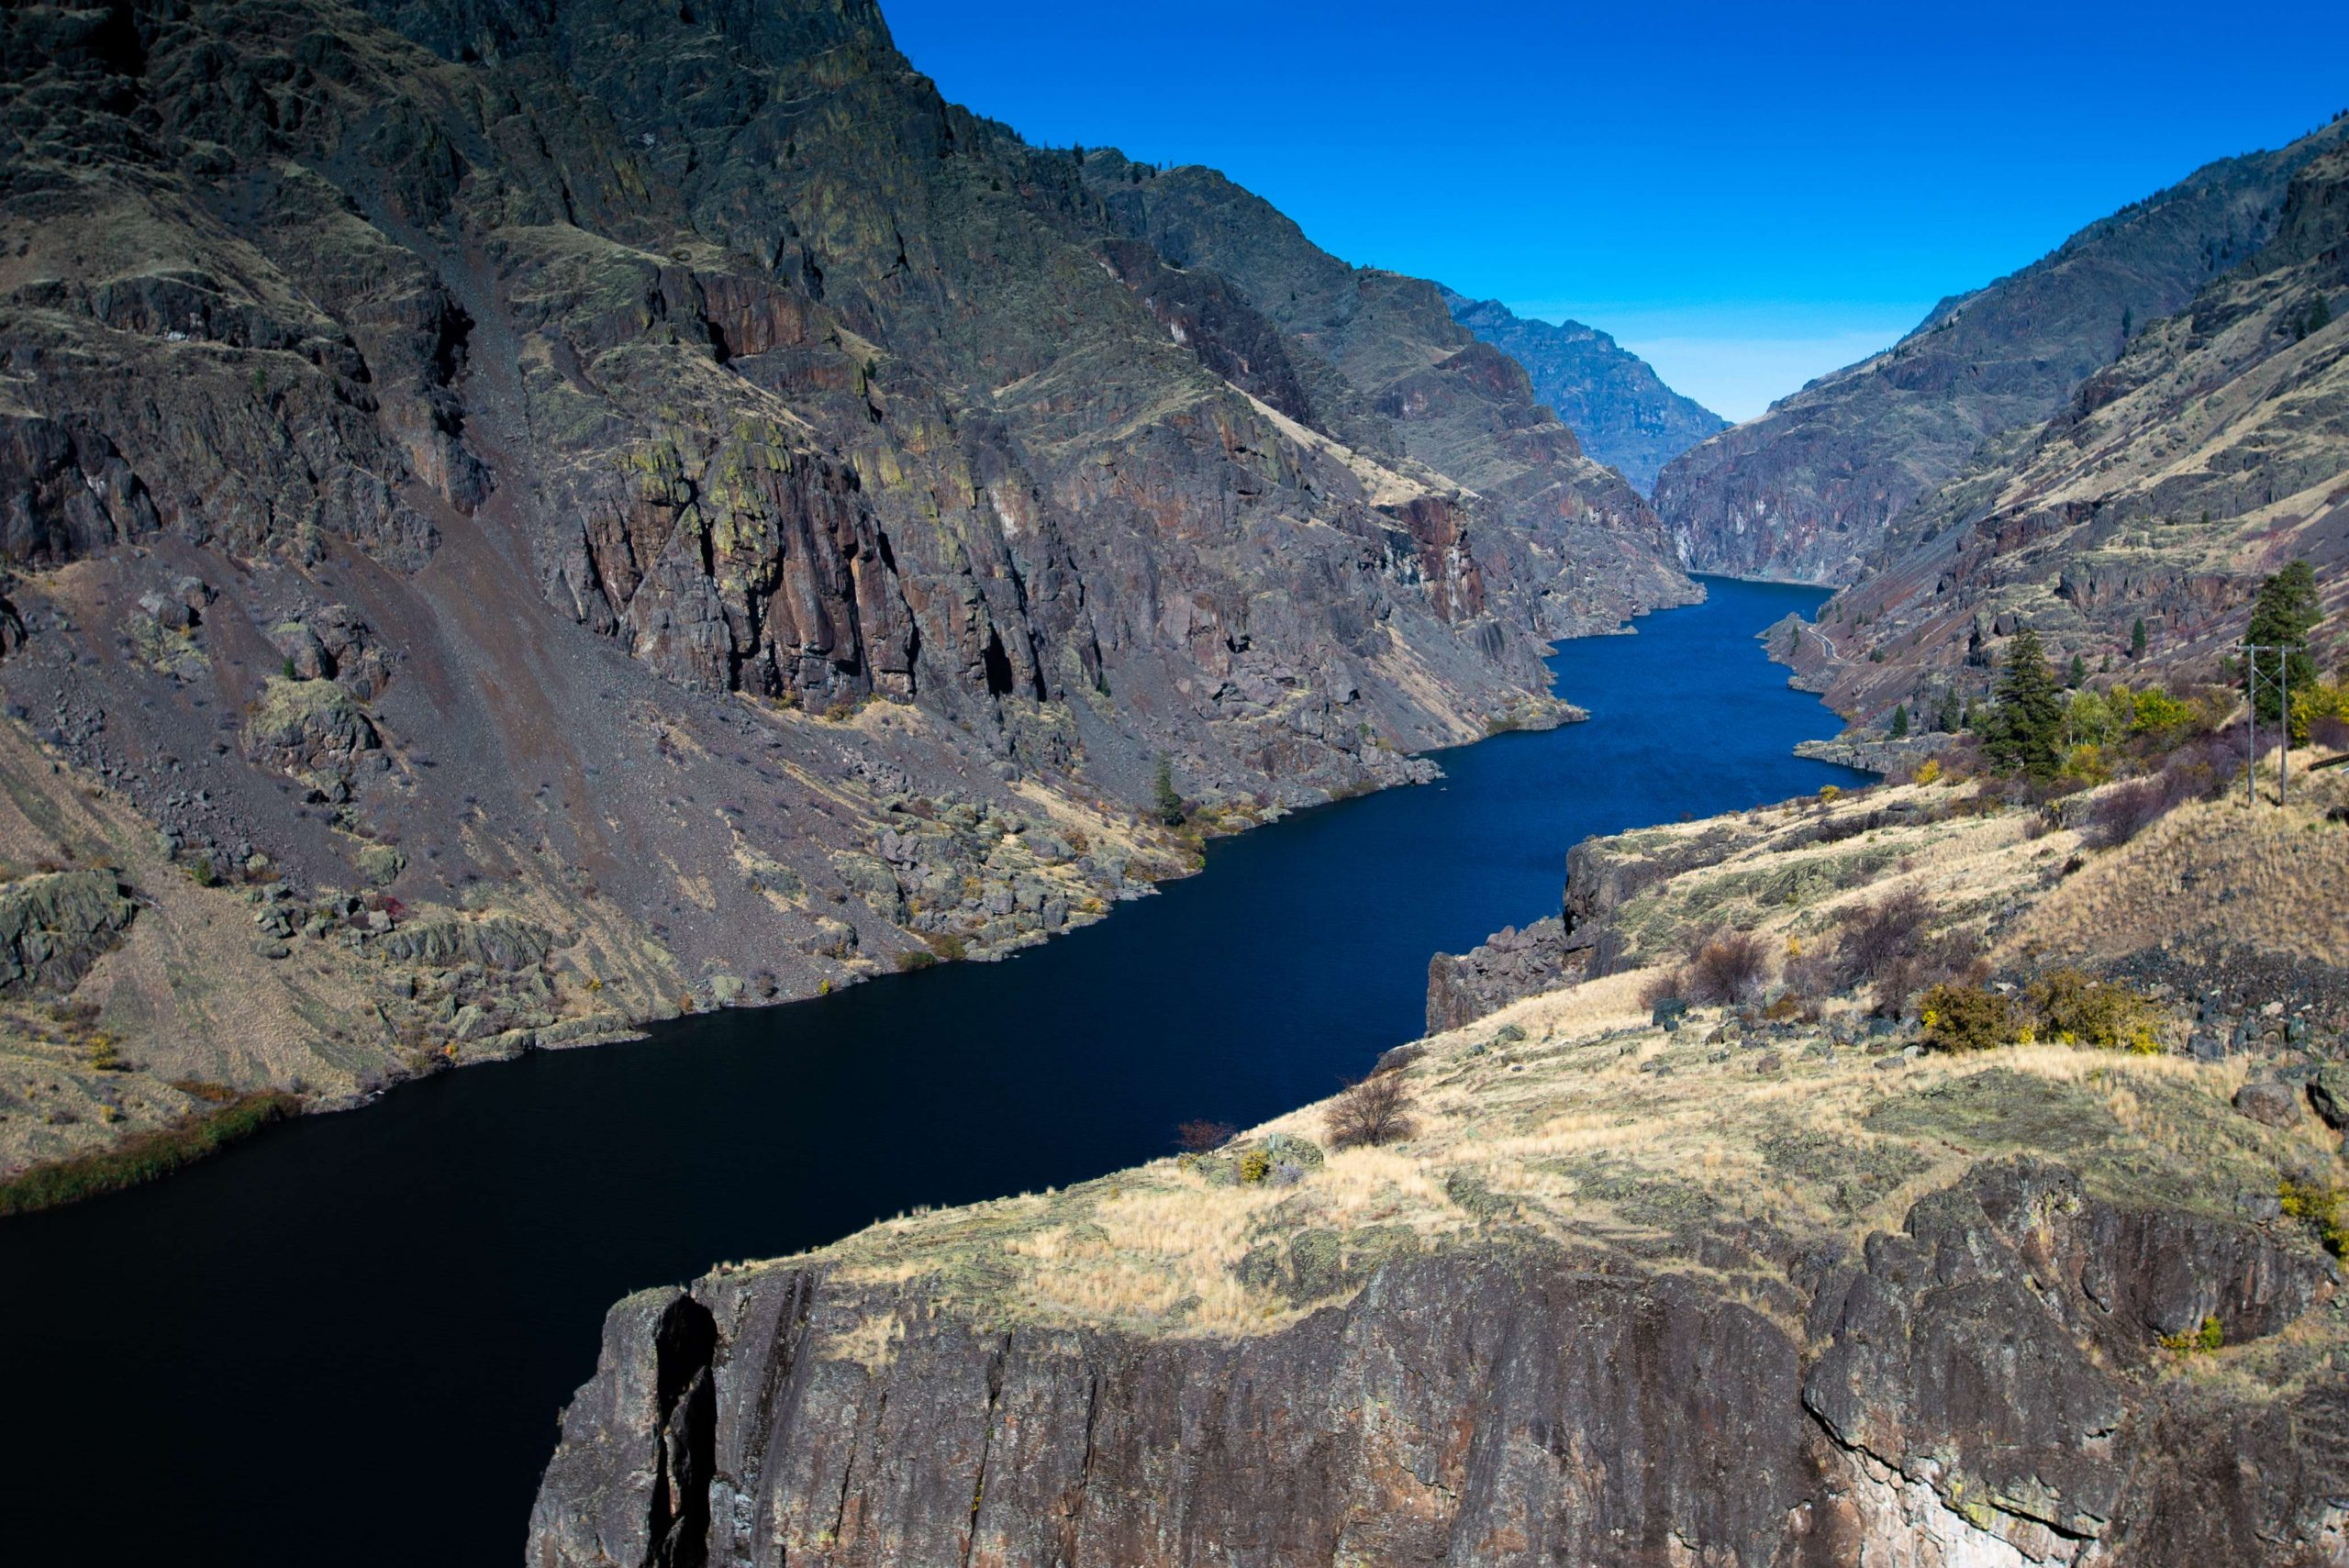 Scenic photo of Hells Canyon in early fall